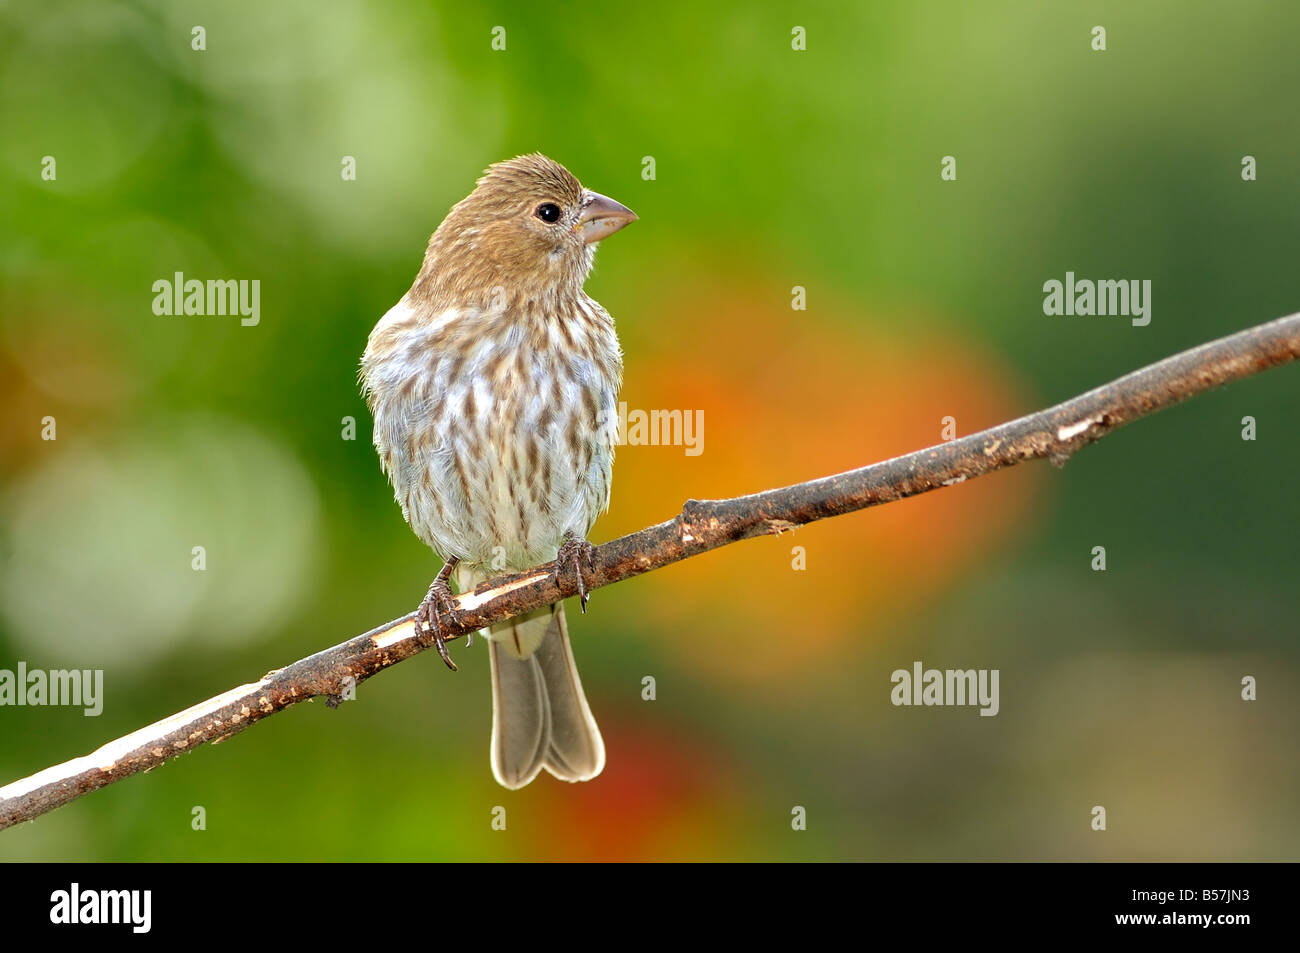 A female House Finch, Carpodacus mexicanus, perches on a bare branch against a colorful background. Oklahoma, USA. - Stock Image